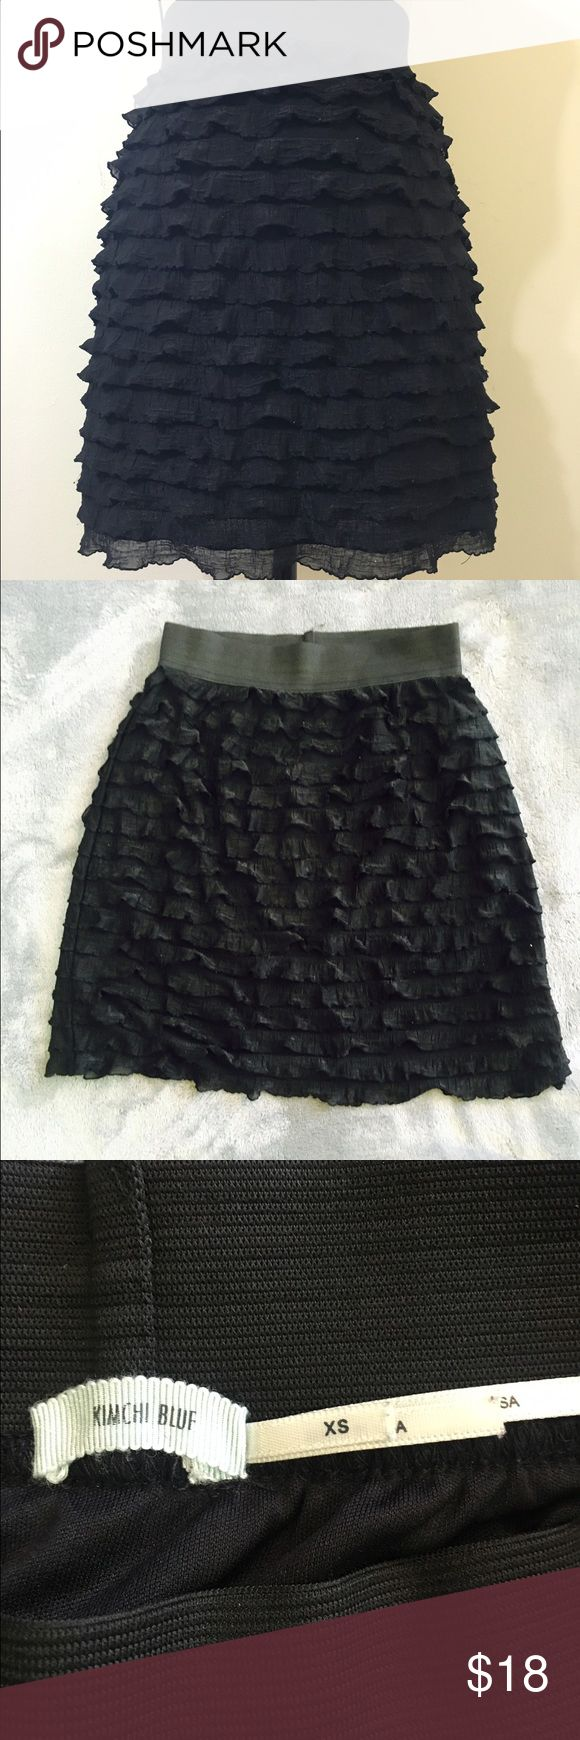 Kimchi Blue micro ruffle black tube skirt. Kimchi Blue by Urban Outfitters.  Gorgeous skirt in perfect condition; does not show any signs of wear.  Perfect skirt for date night or a night on the town! Urban Outfitters Skirts Mini